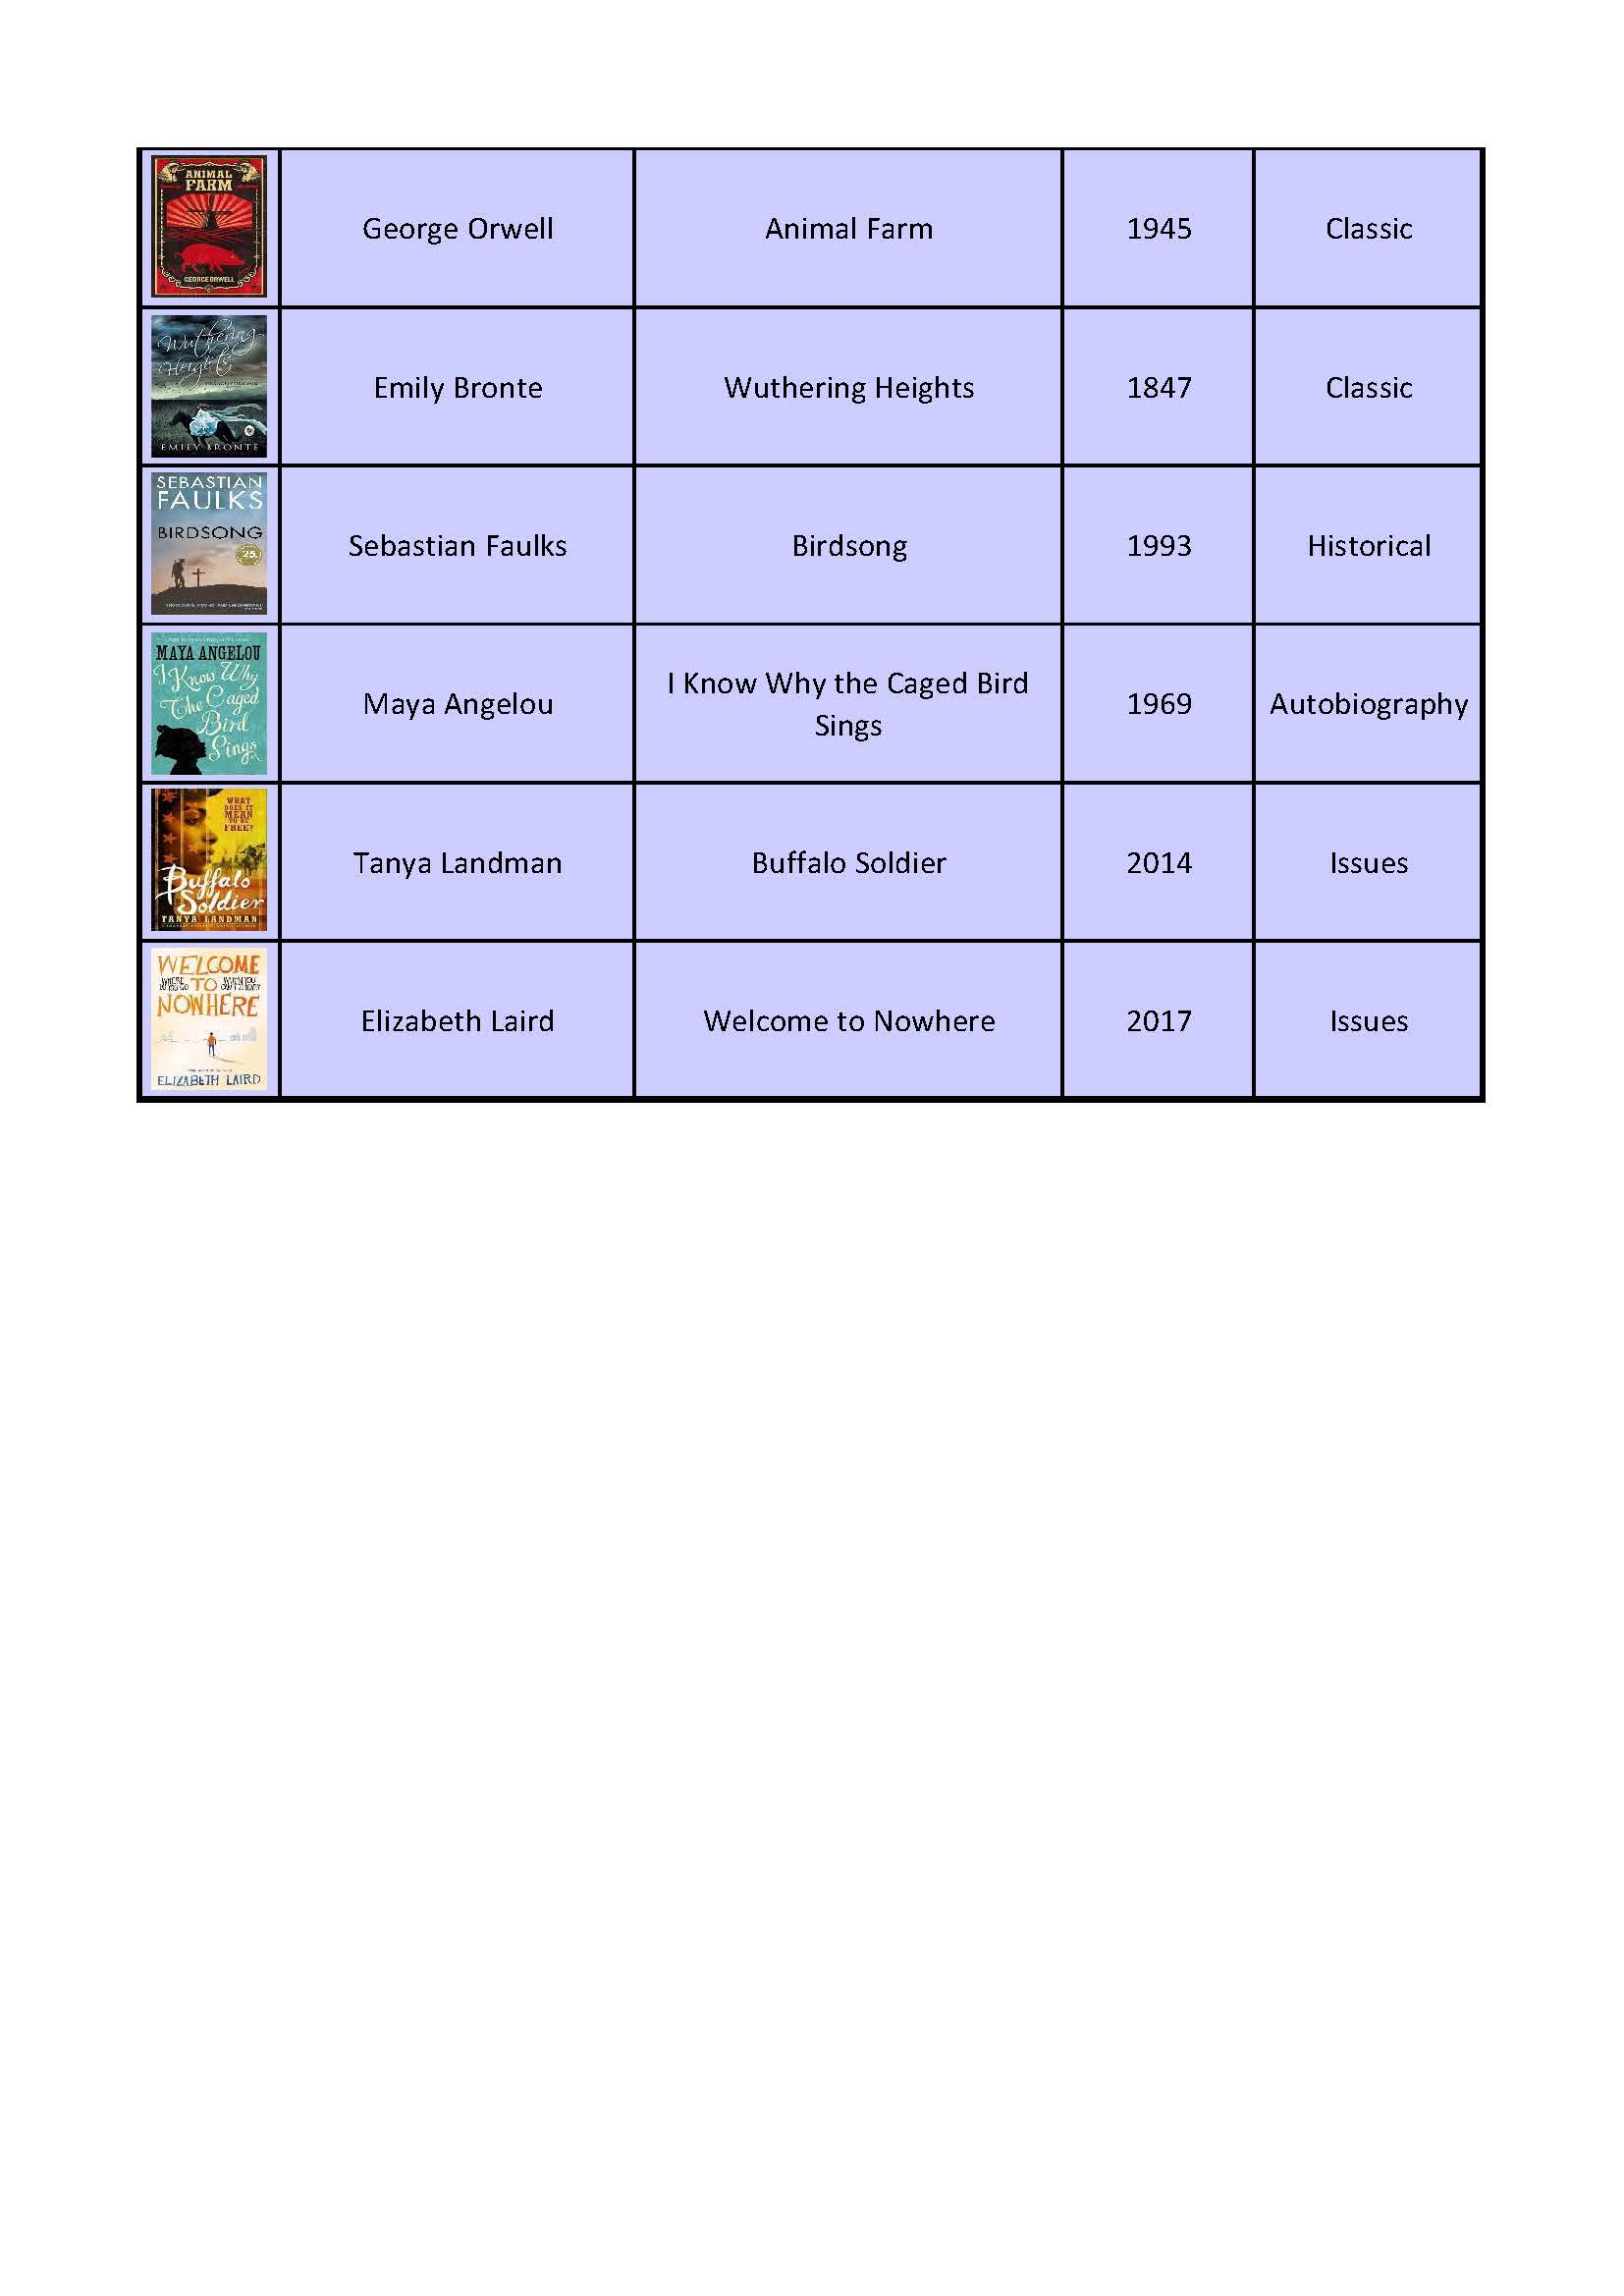 Priory Plus Reading List with images KS4_Page_4.jpg